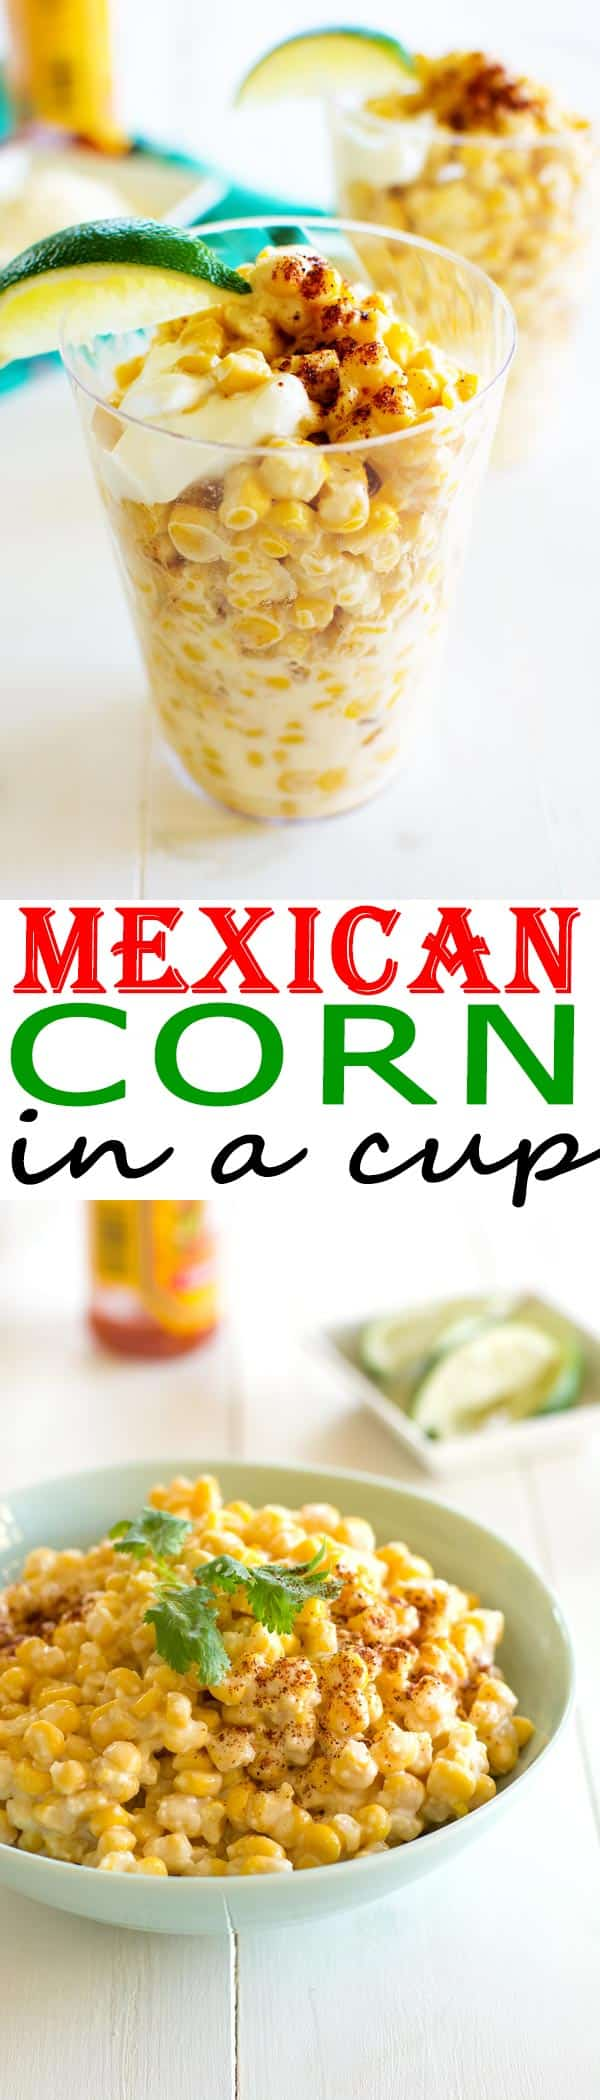 Mexican Corn in a Cup recipe (Elotes). Now you can have this street food at home! #recipes #recipeideas #easyrecipe #food #foodgawker #foodblog #recipeoftheday #appetizer #sidedish #cheese #partyfood #mexicanfood #corn #summer #spring